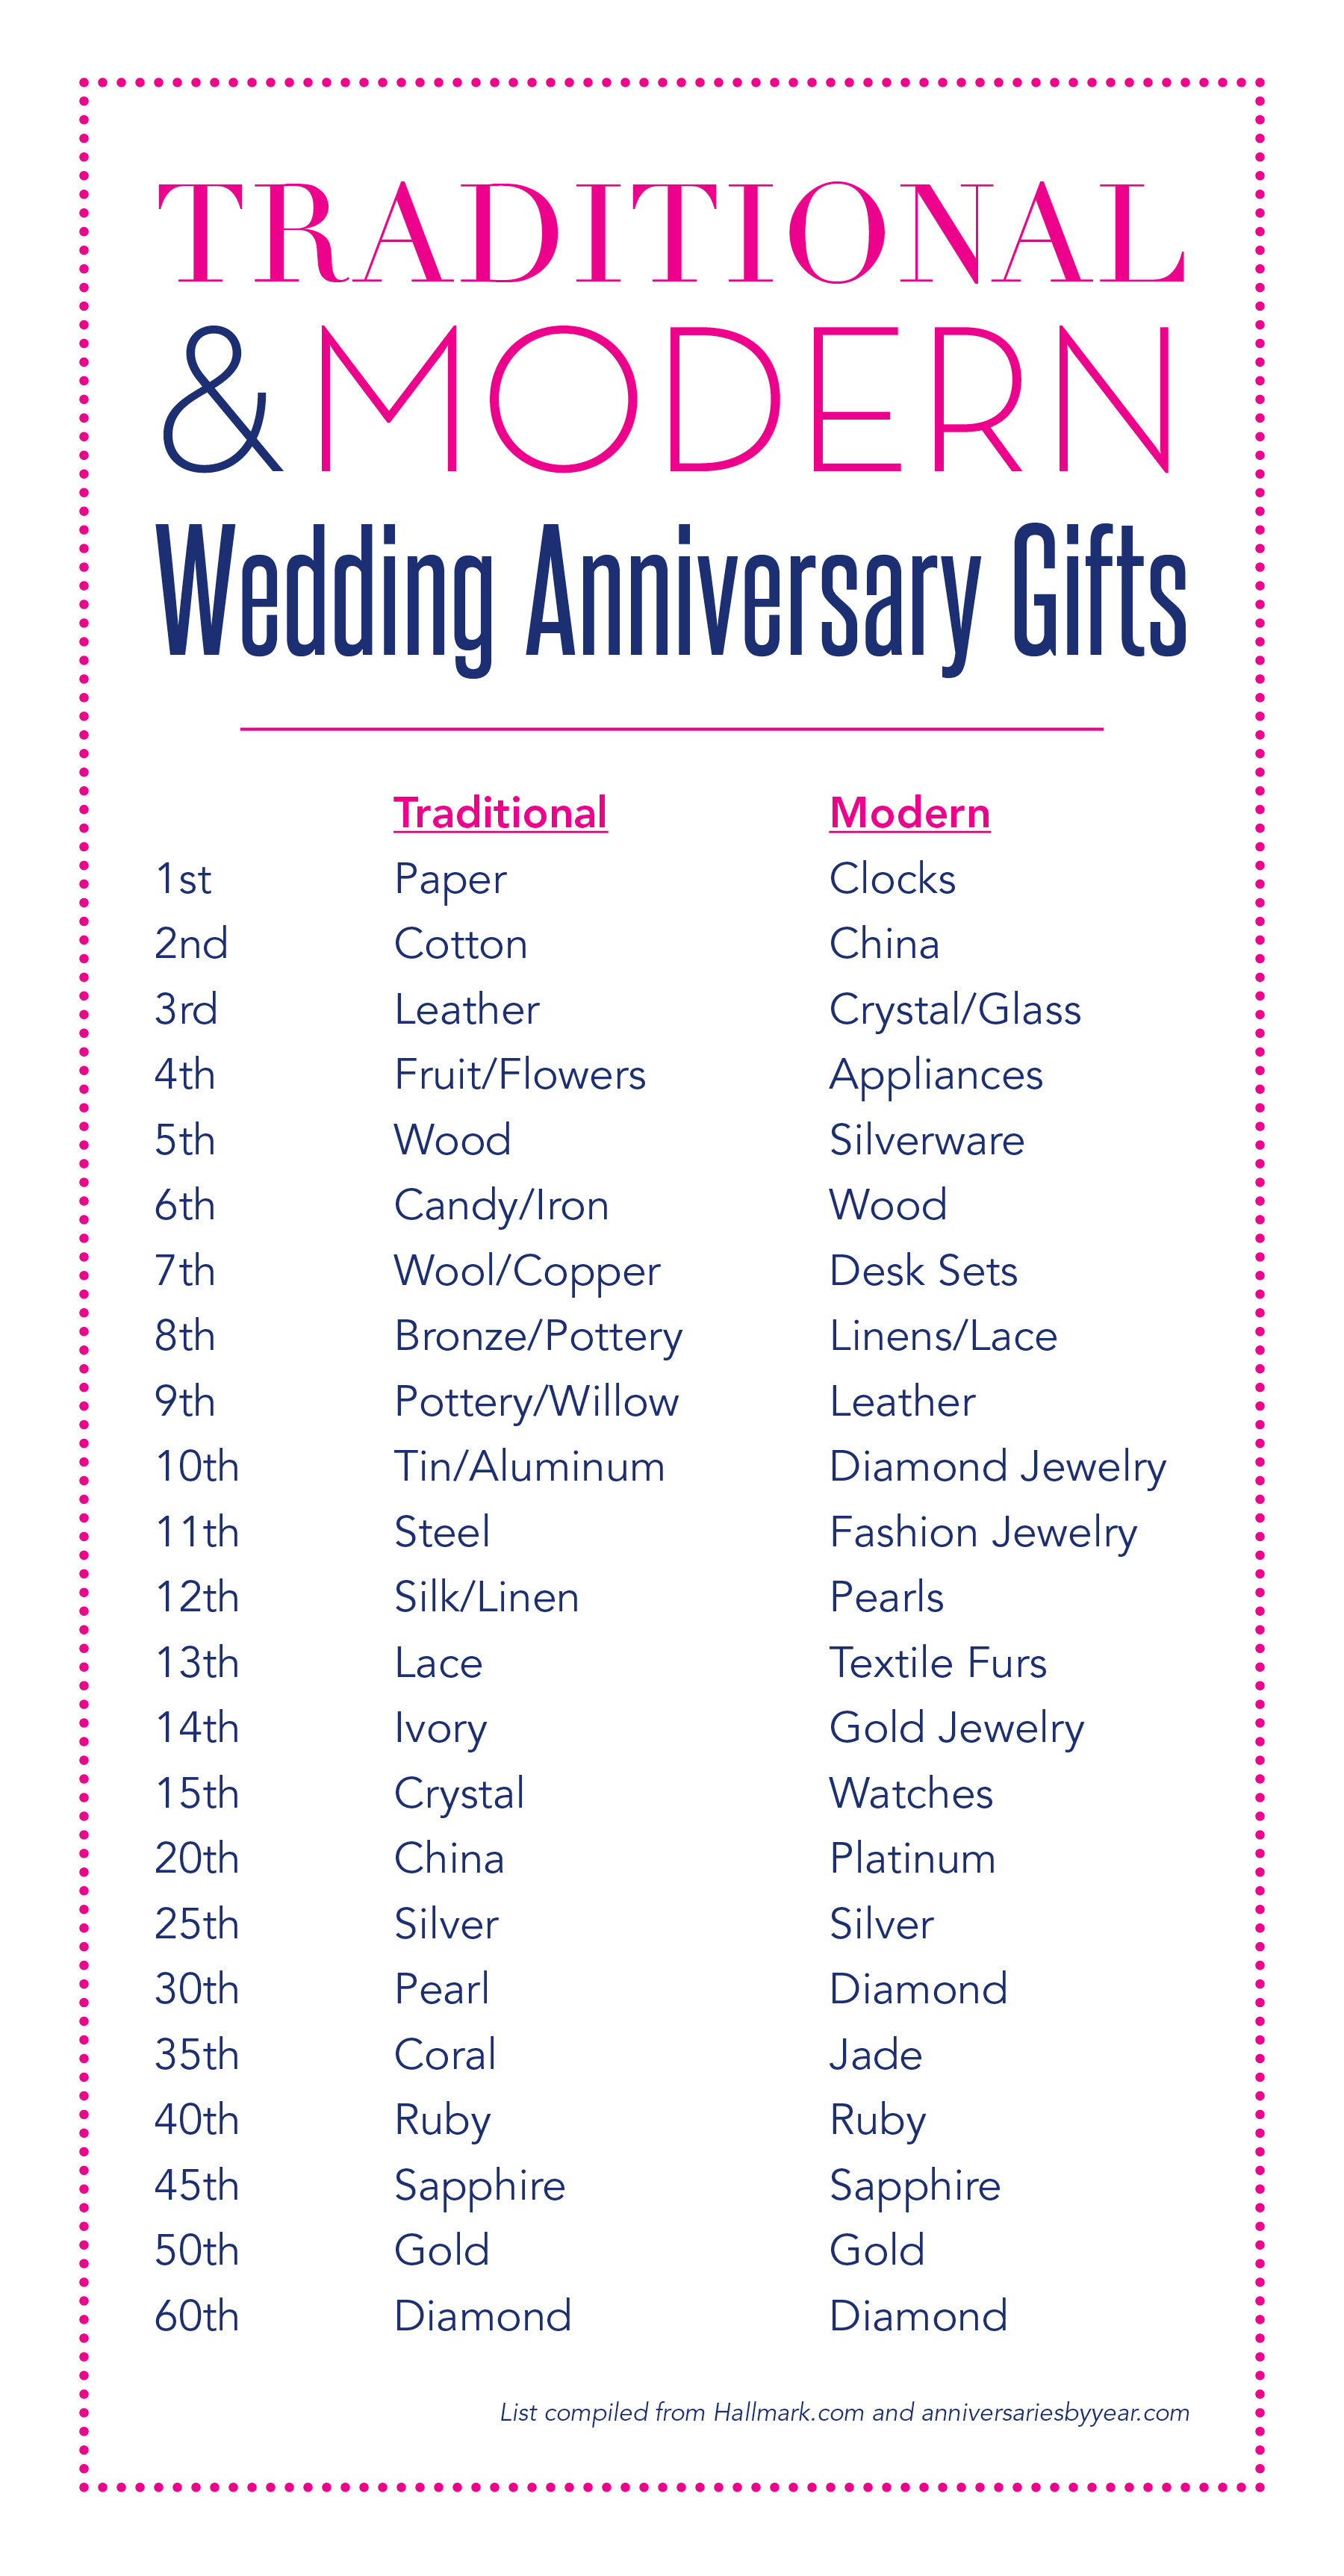 Wedding Gifts By Years Married : wedding anniversary gifts (traditional & modern)